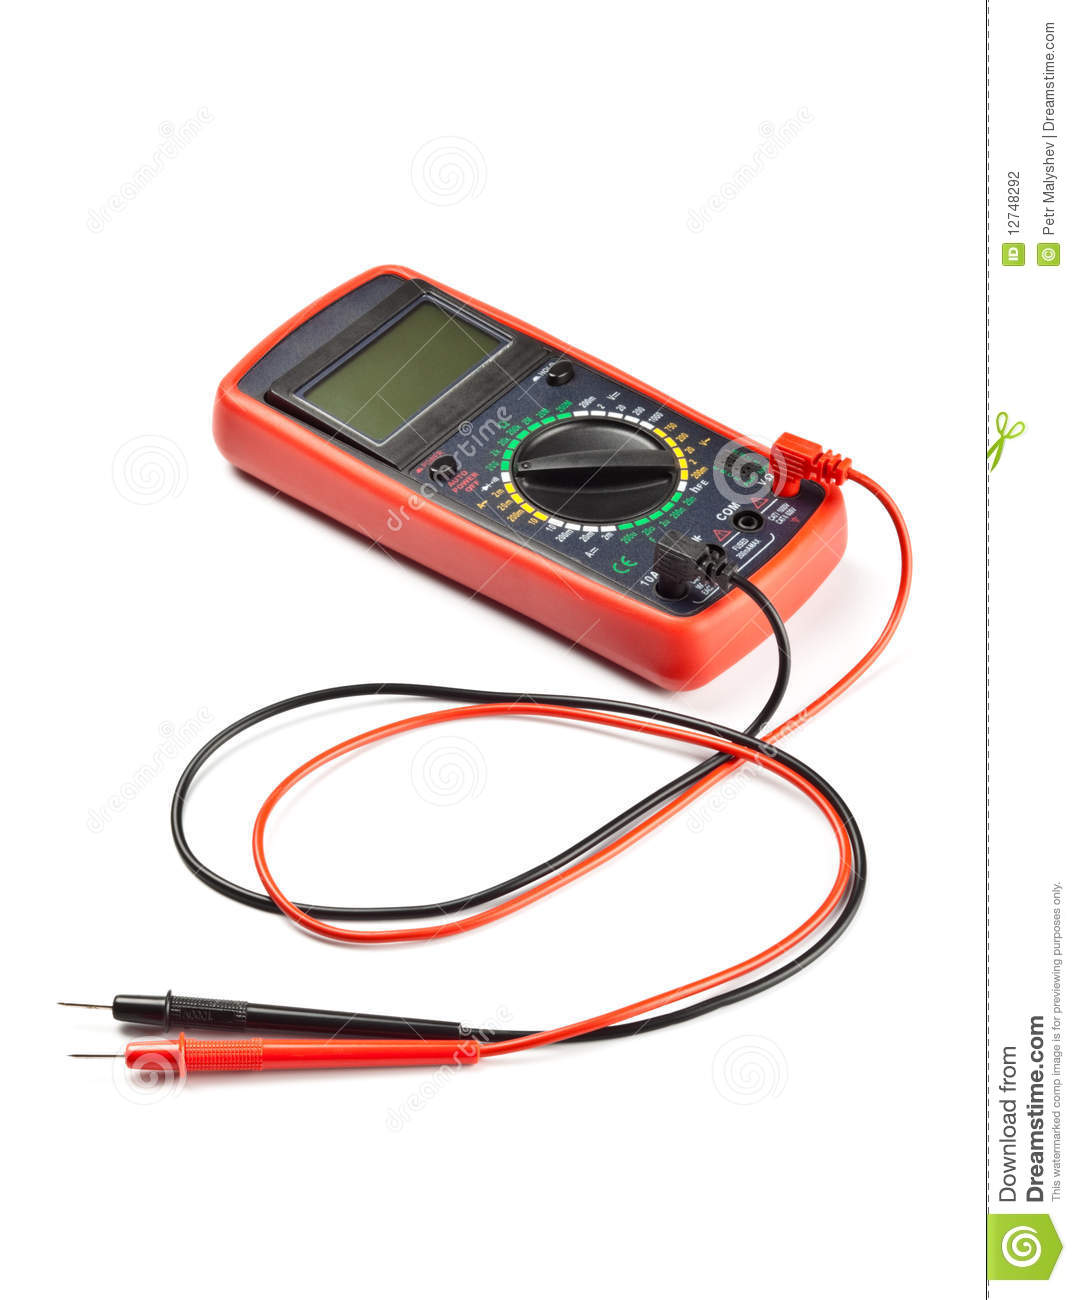 Electronic Measuring Devices Measure : Electronic measuring device stock photo image of